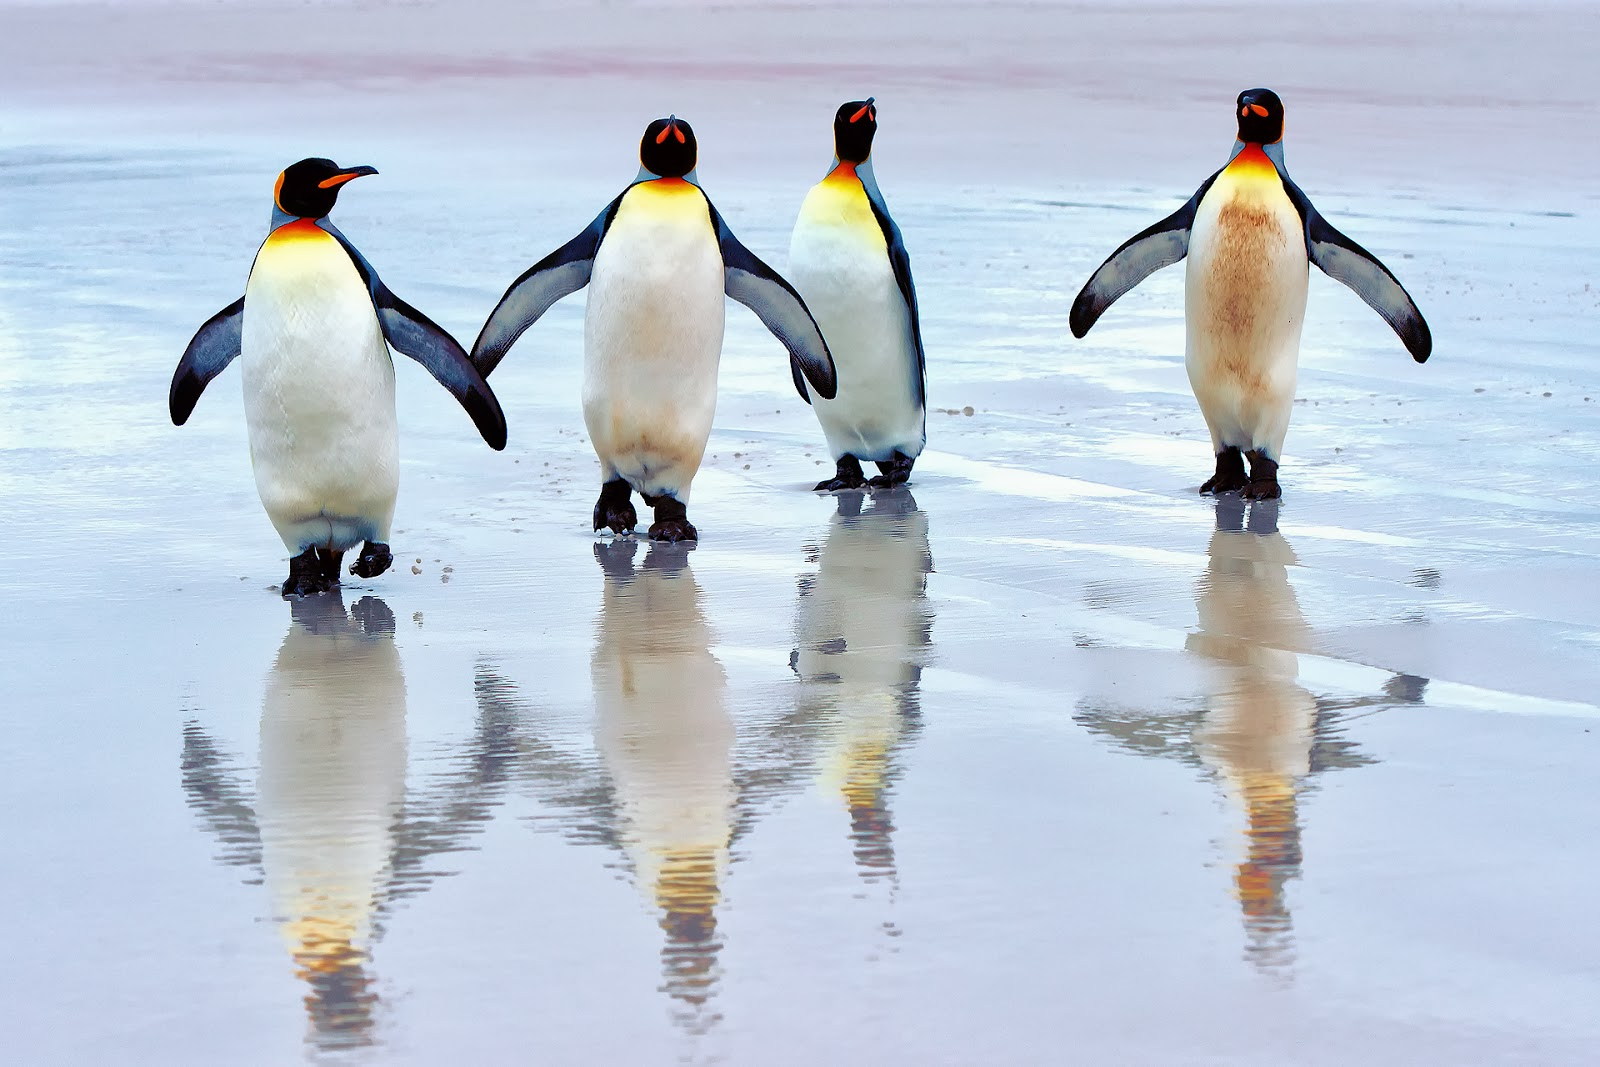 Penguin desktop wallpaper hd - photo#13